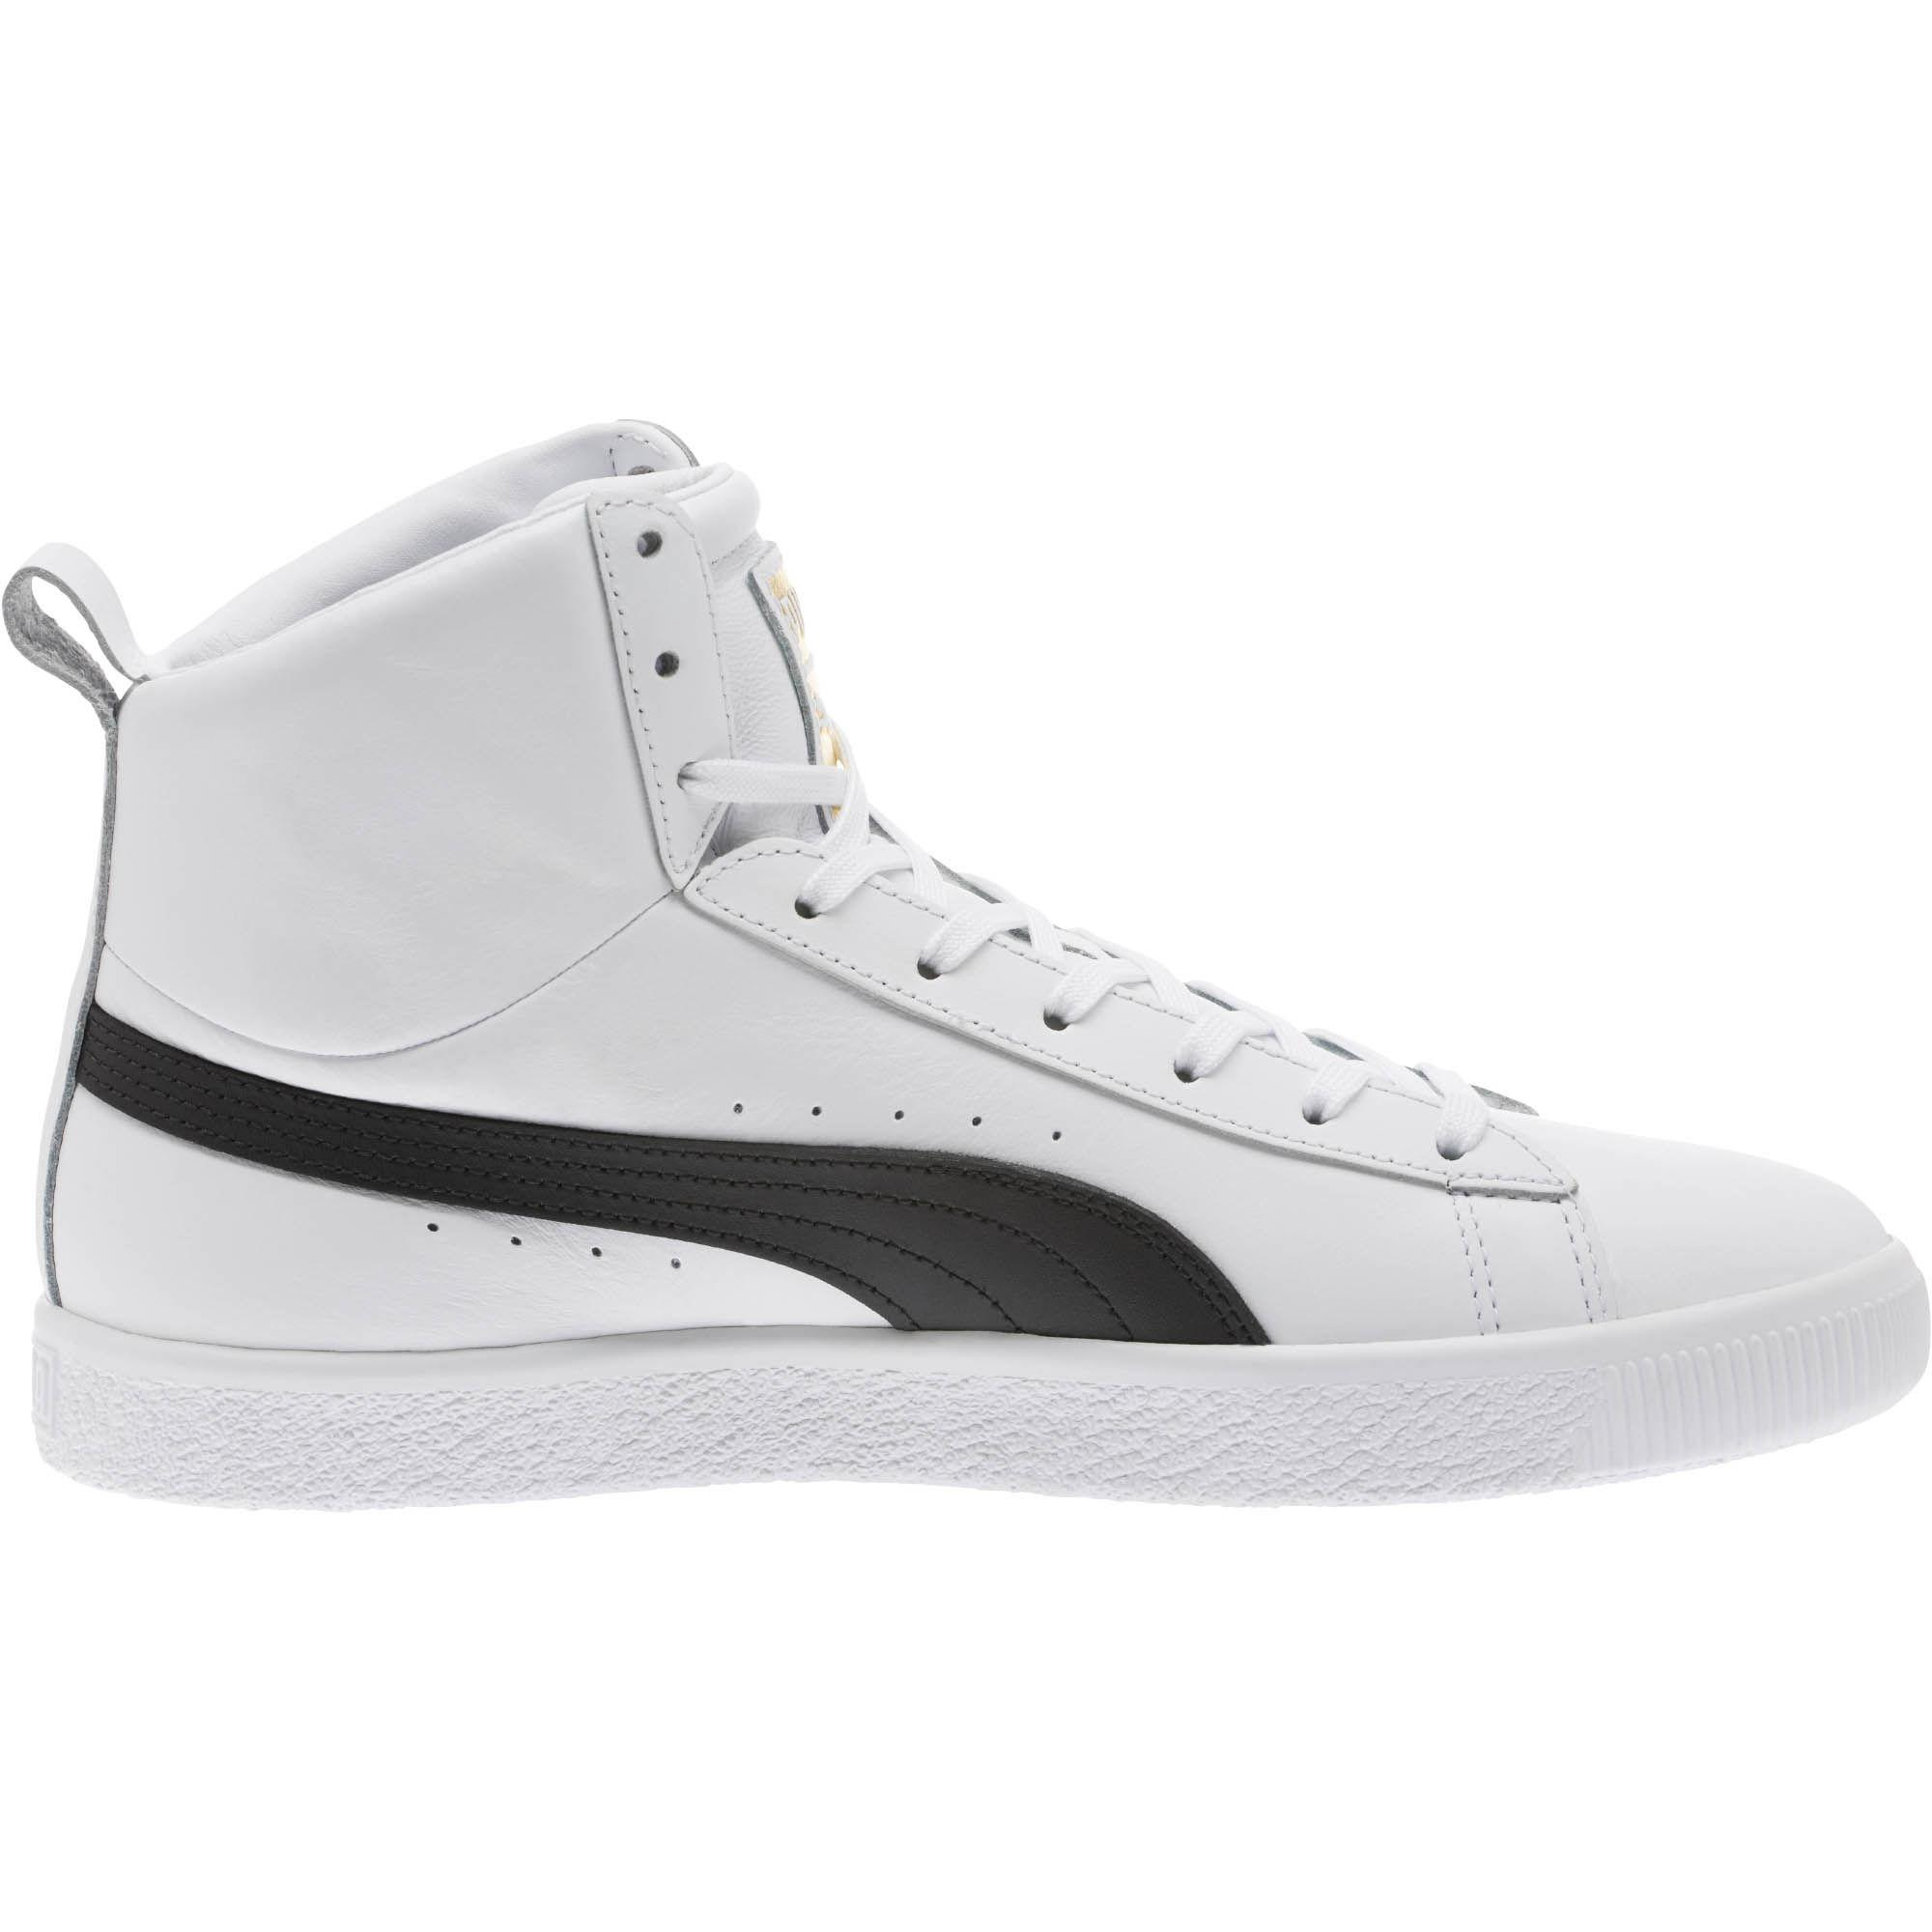 PUMA Leather Clyde Core Mid Sneakers in